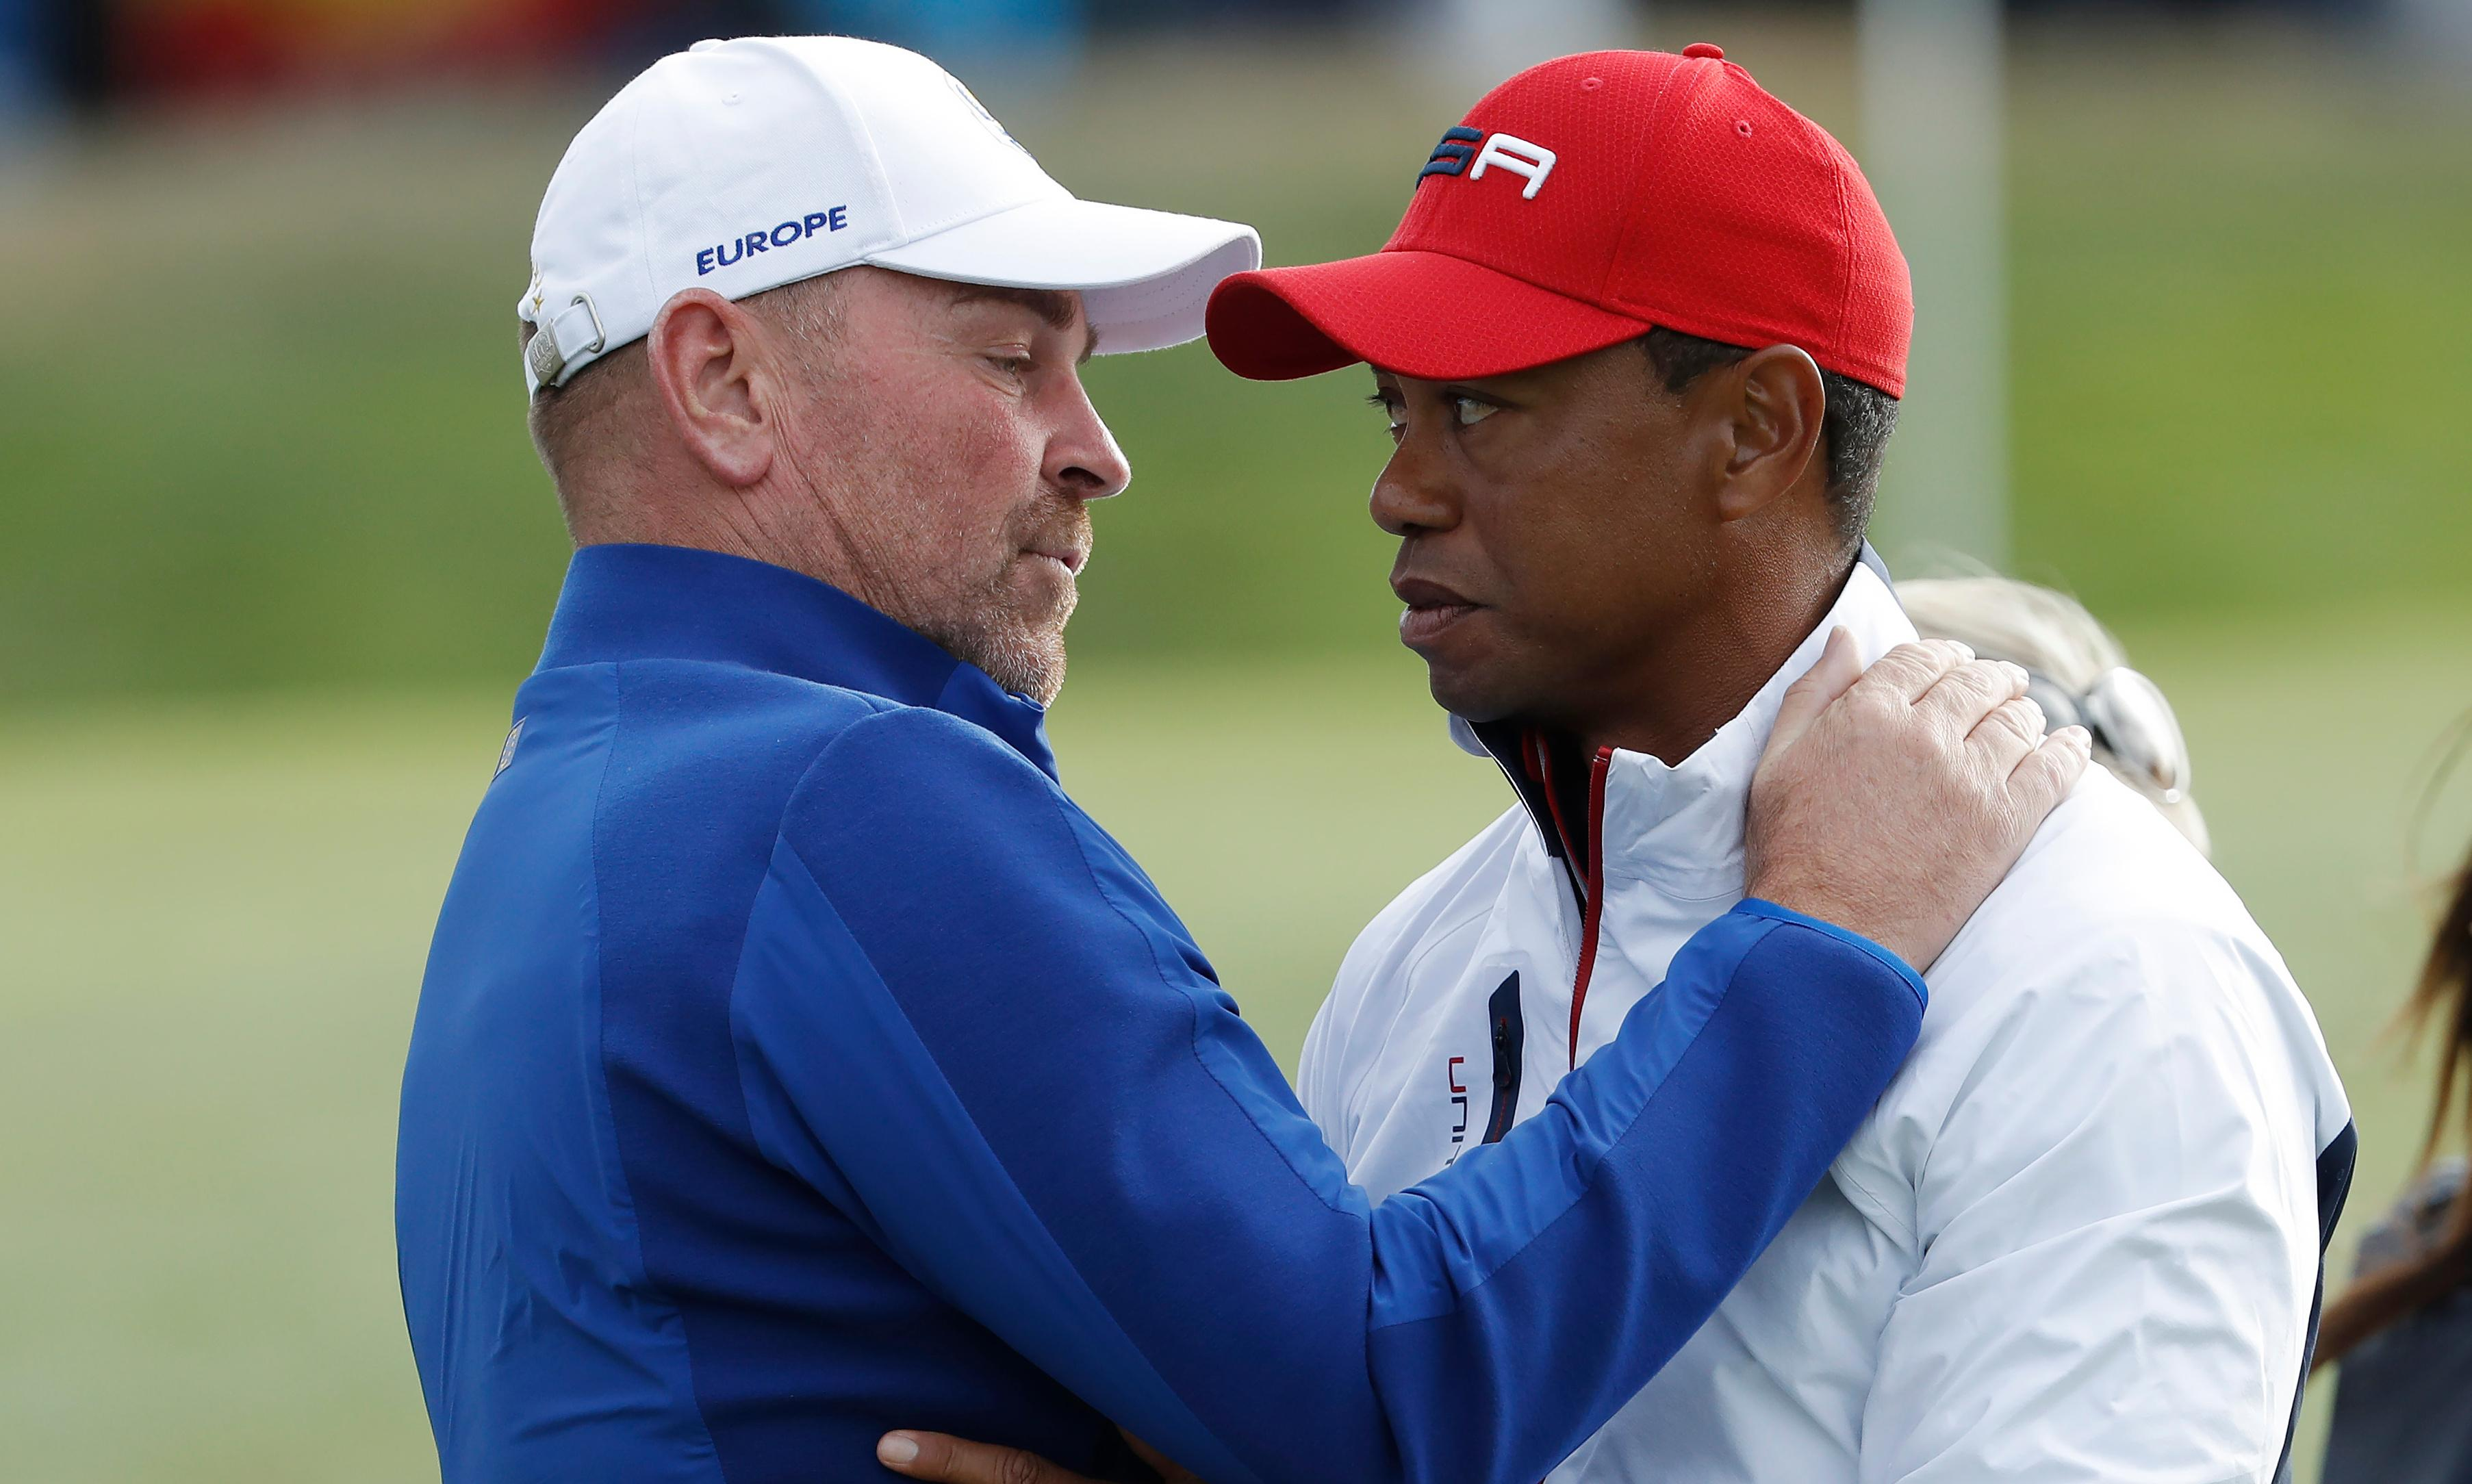 Tiger Woods accepts share of blame as USA's Ryder Cup fightback falls flat